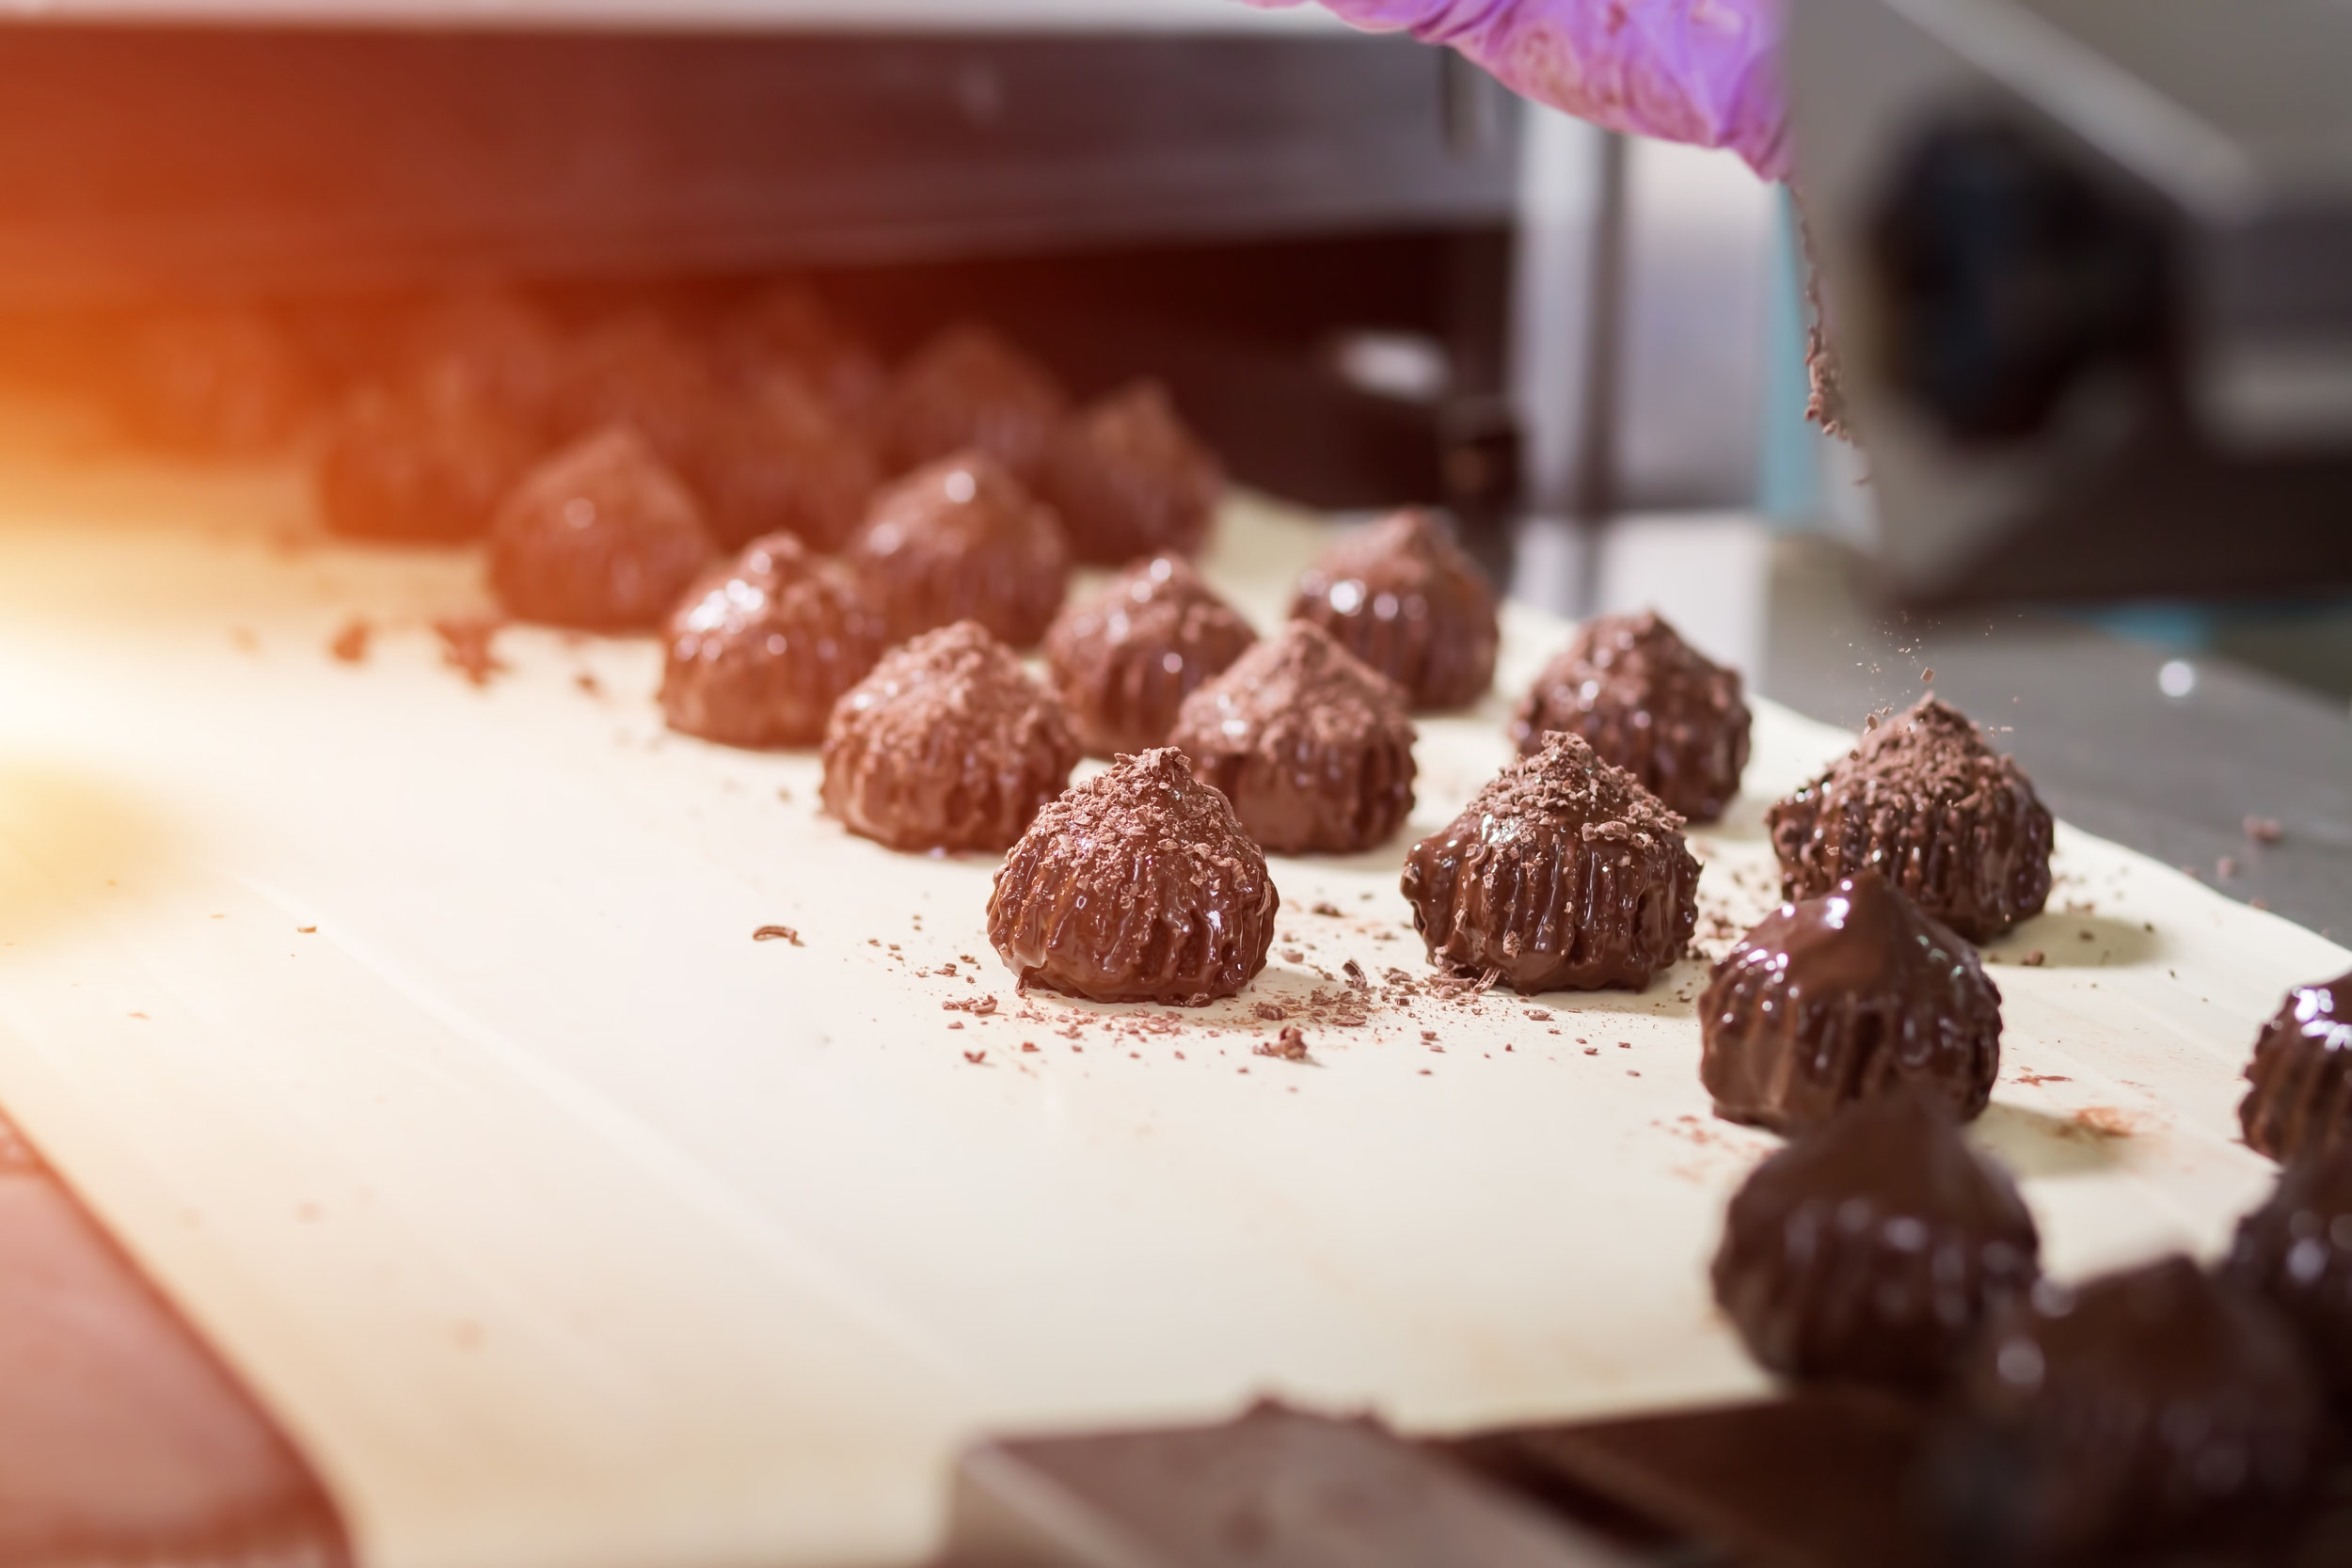 Chocolate factory, candy assembly line